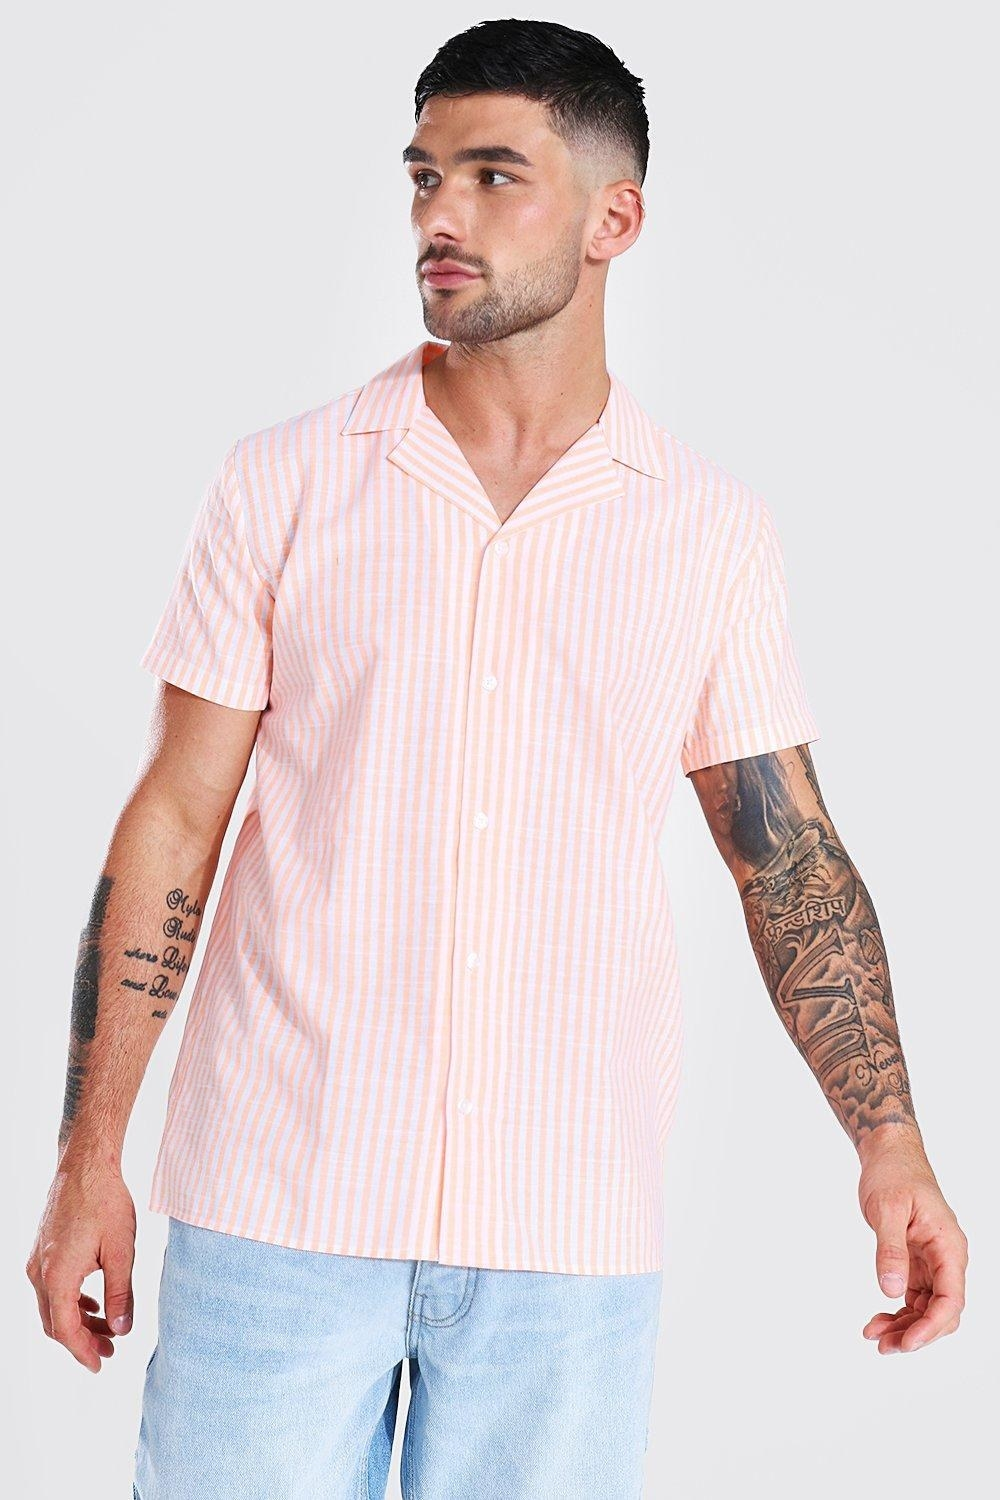 a model in a pink and white striped button down